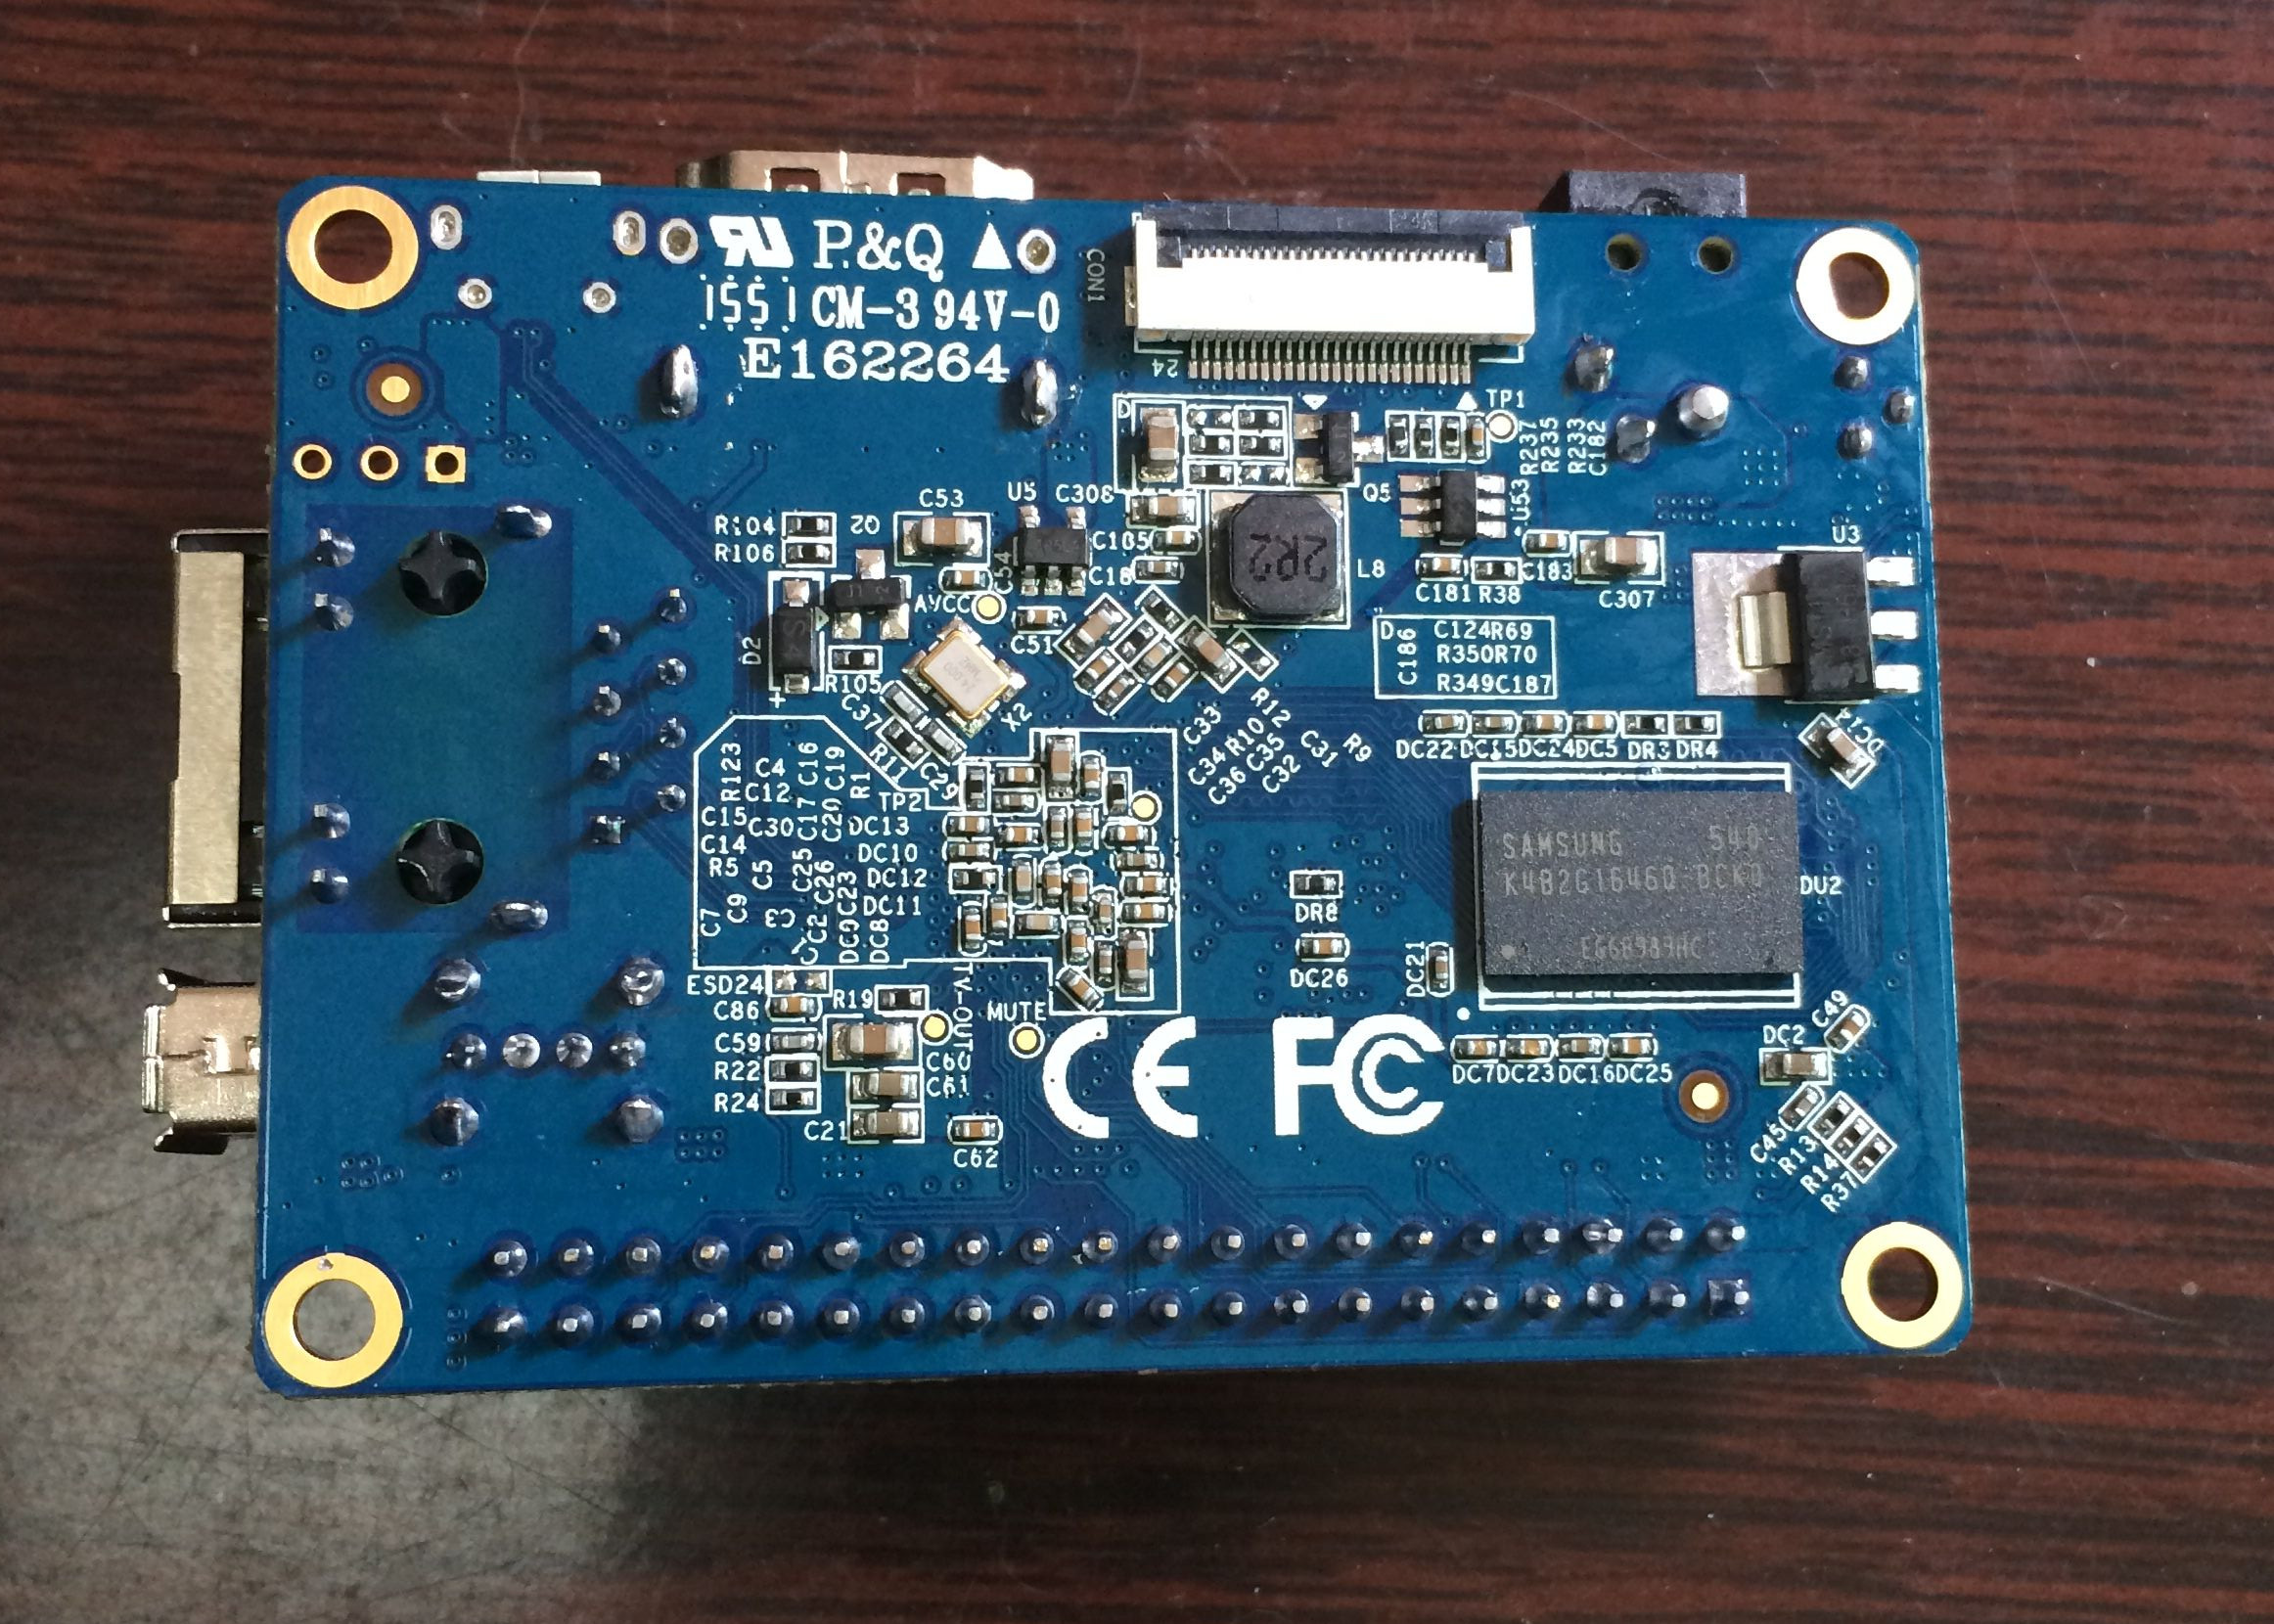 Orange Pi One is a $10 Quad Core Board with Ethernet and HDMI